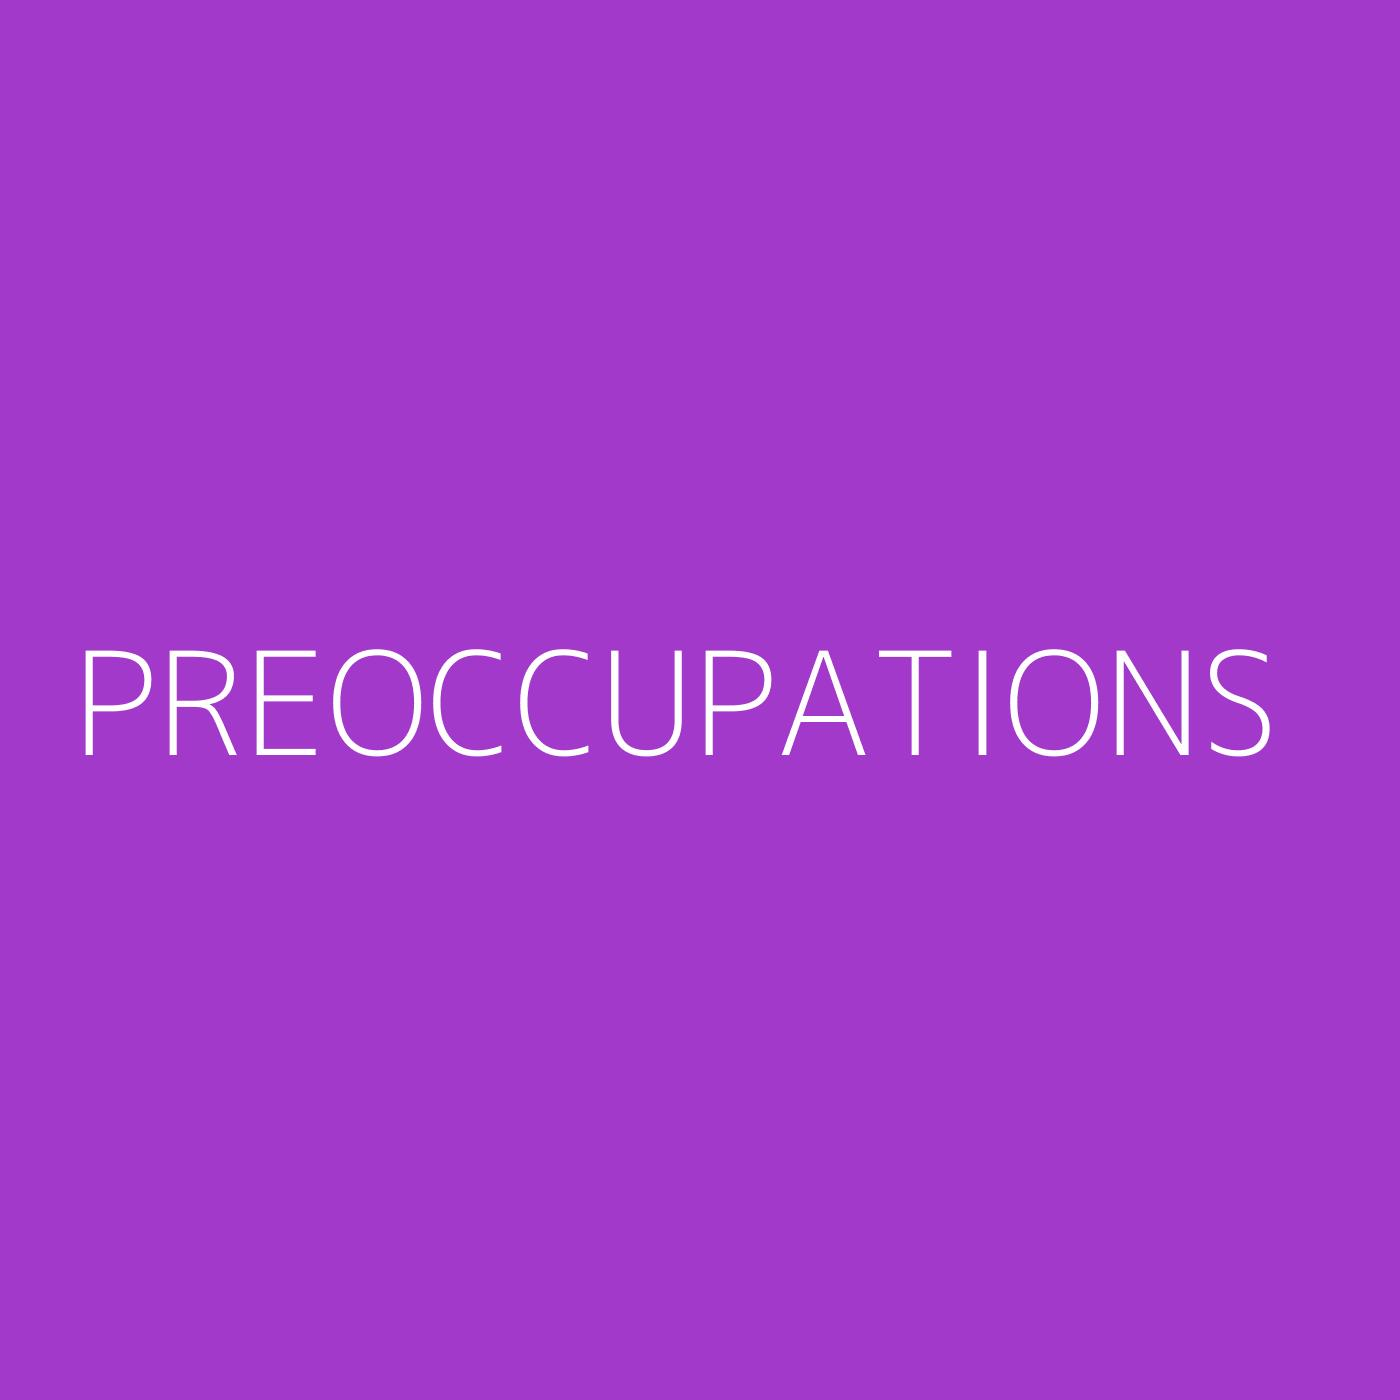 Preoccupations Playlist Artwork